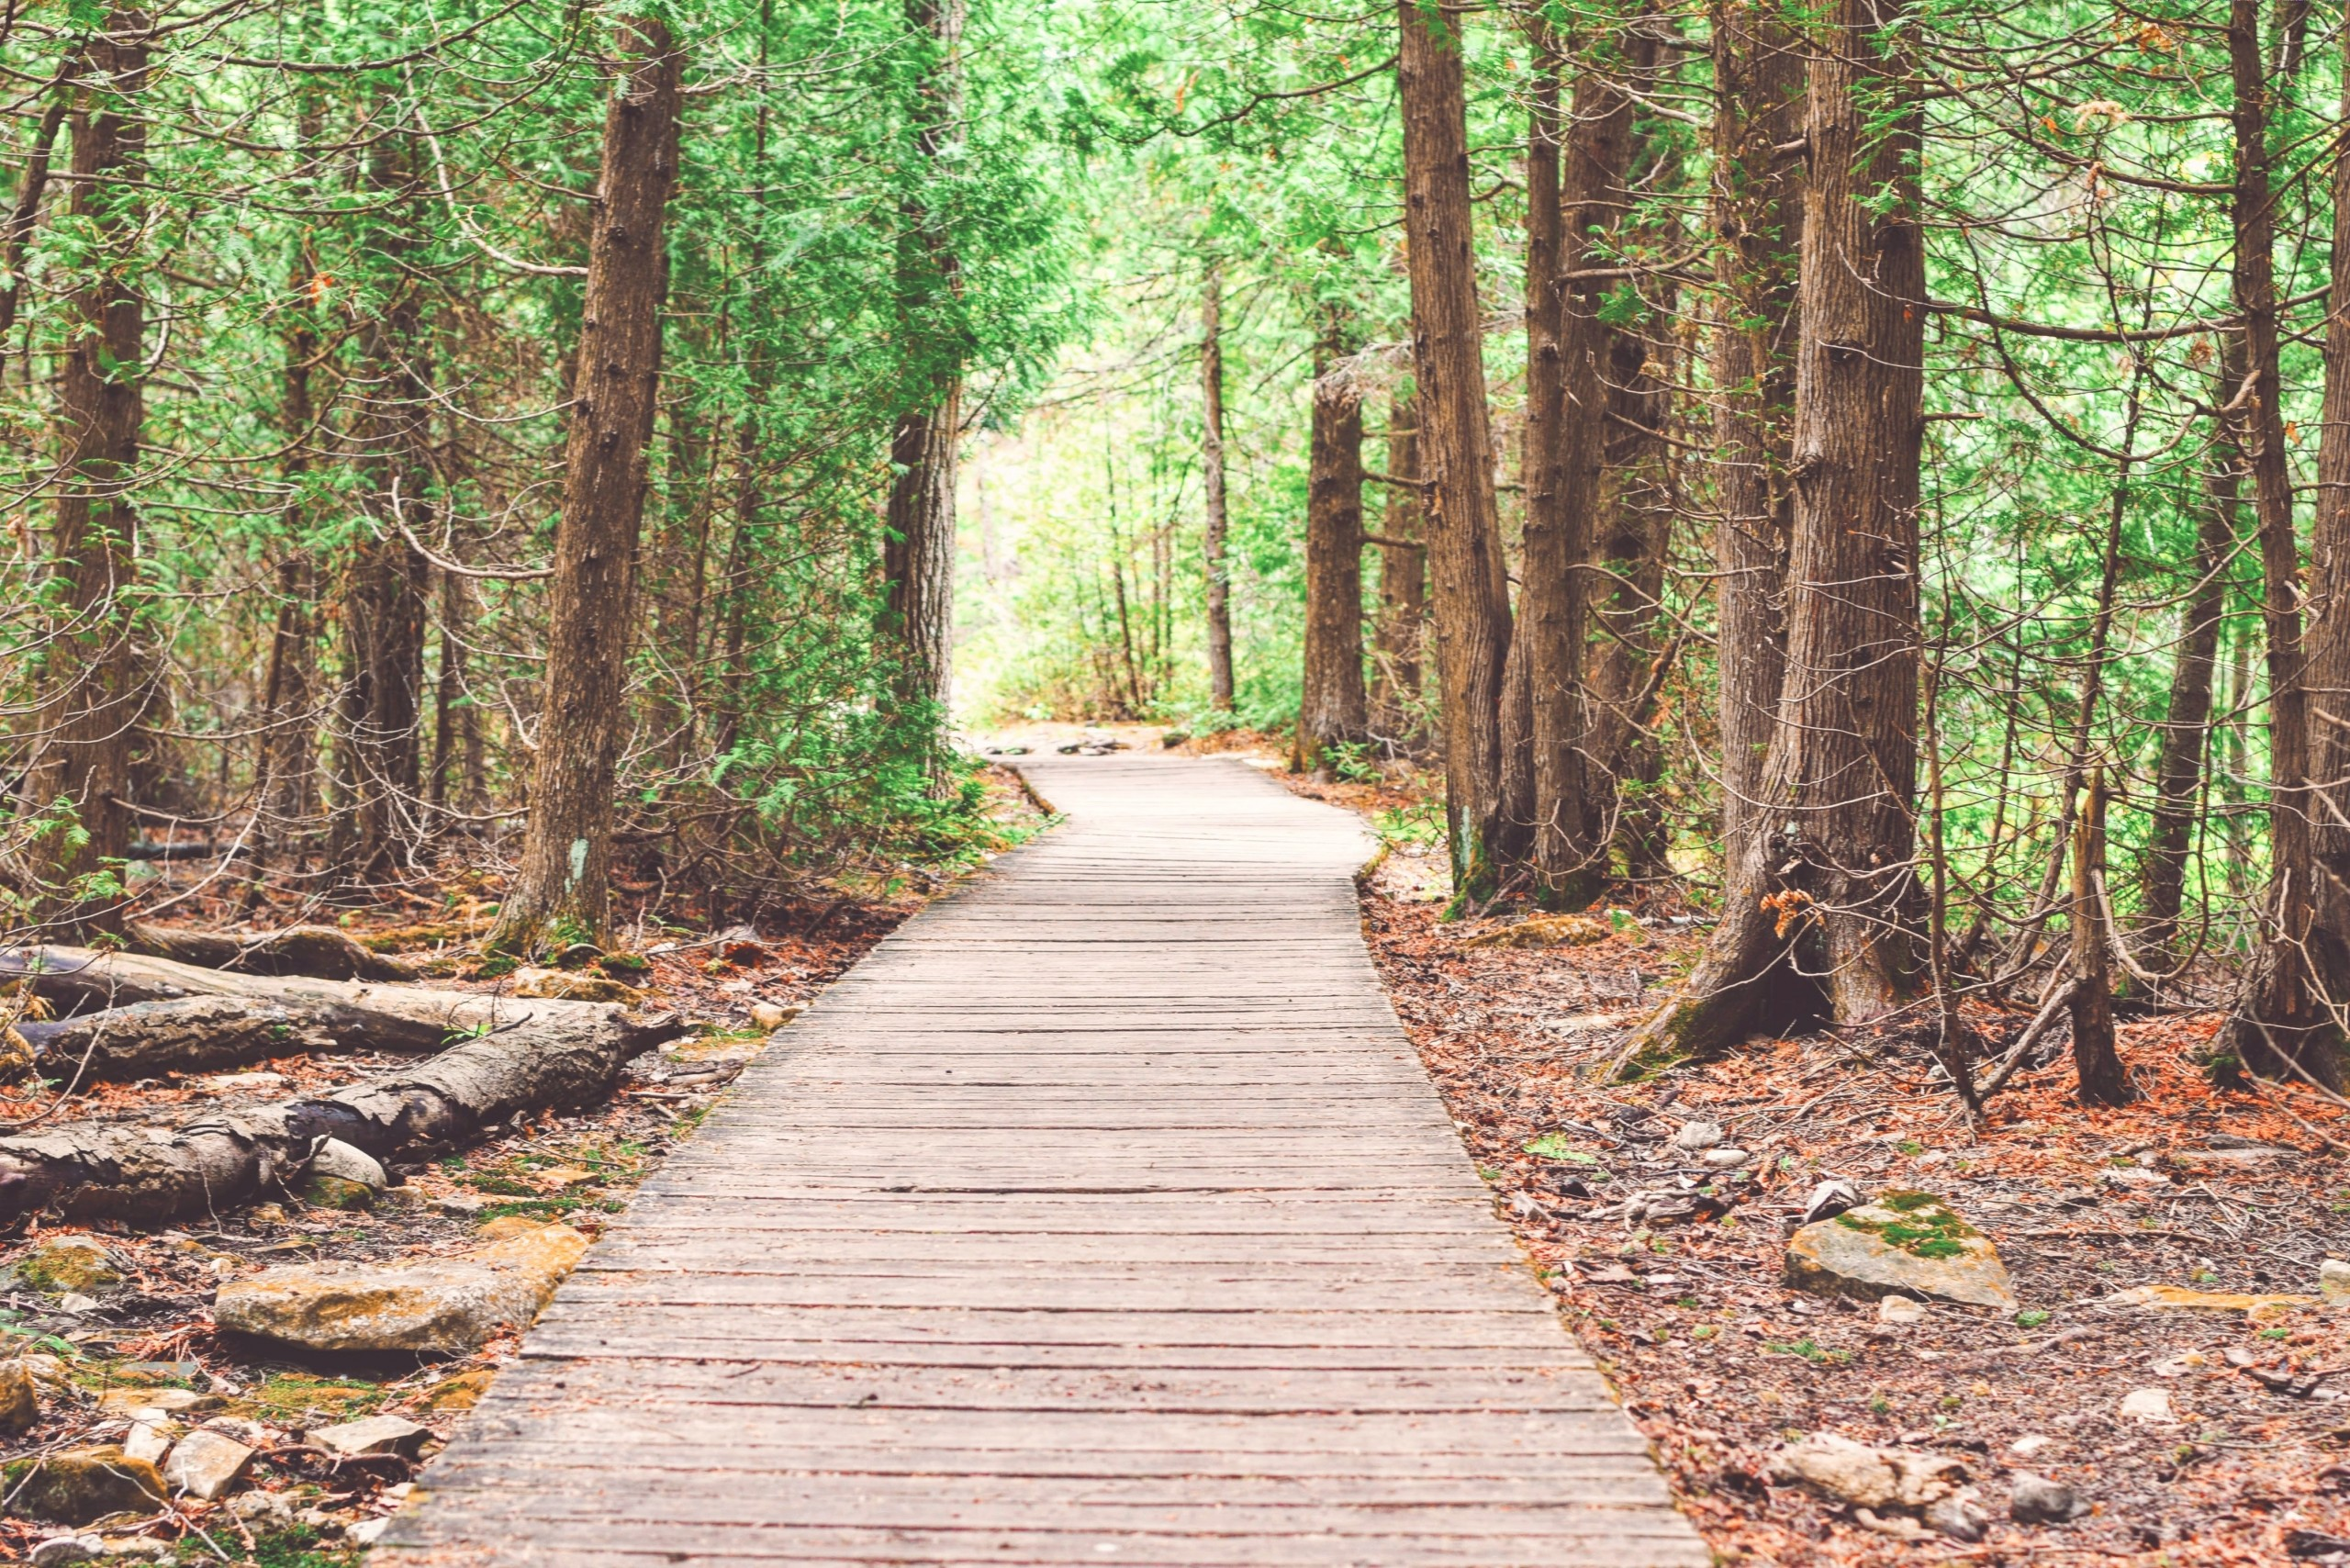 Boardwalk trail through forest.